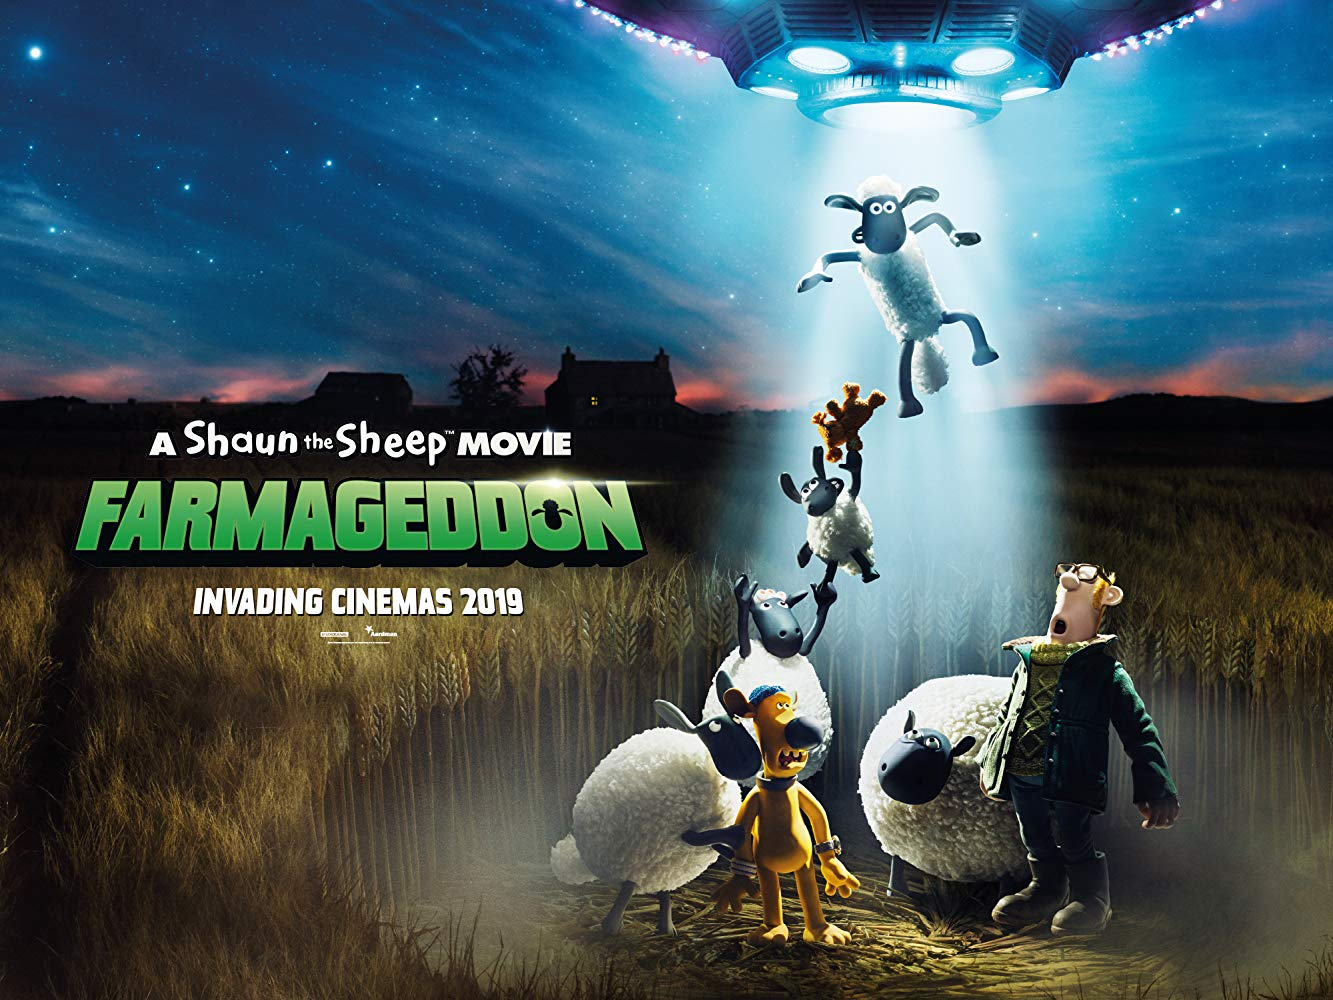 Faramageddon 2019 movie poster Shaun the sheep